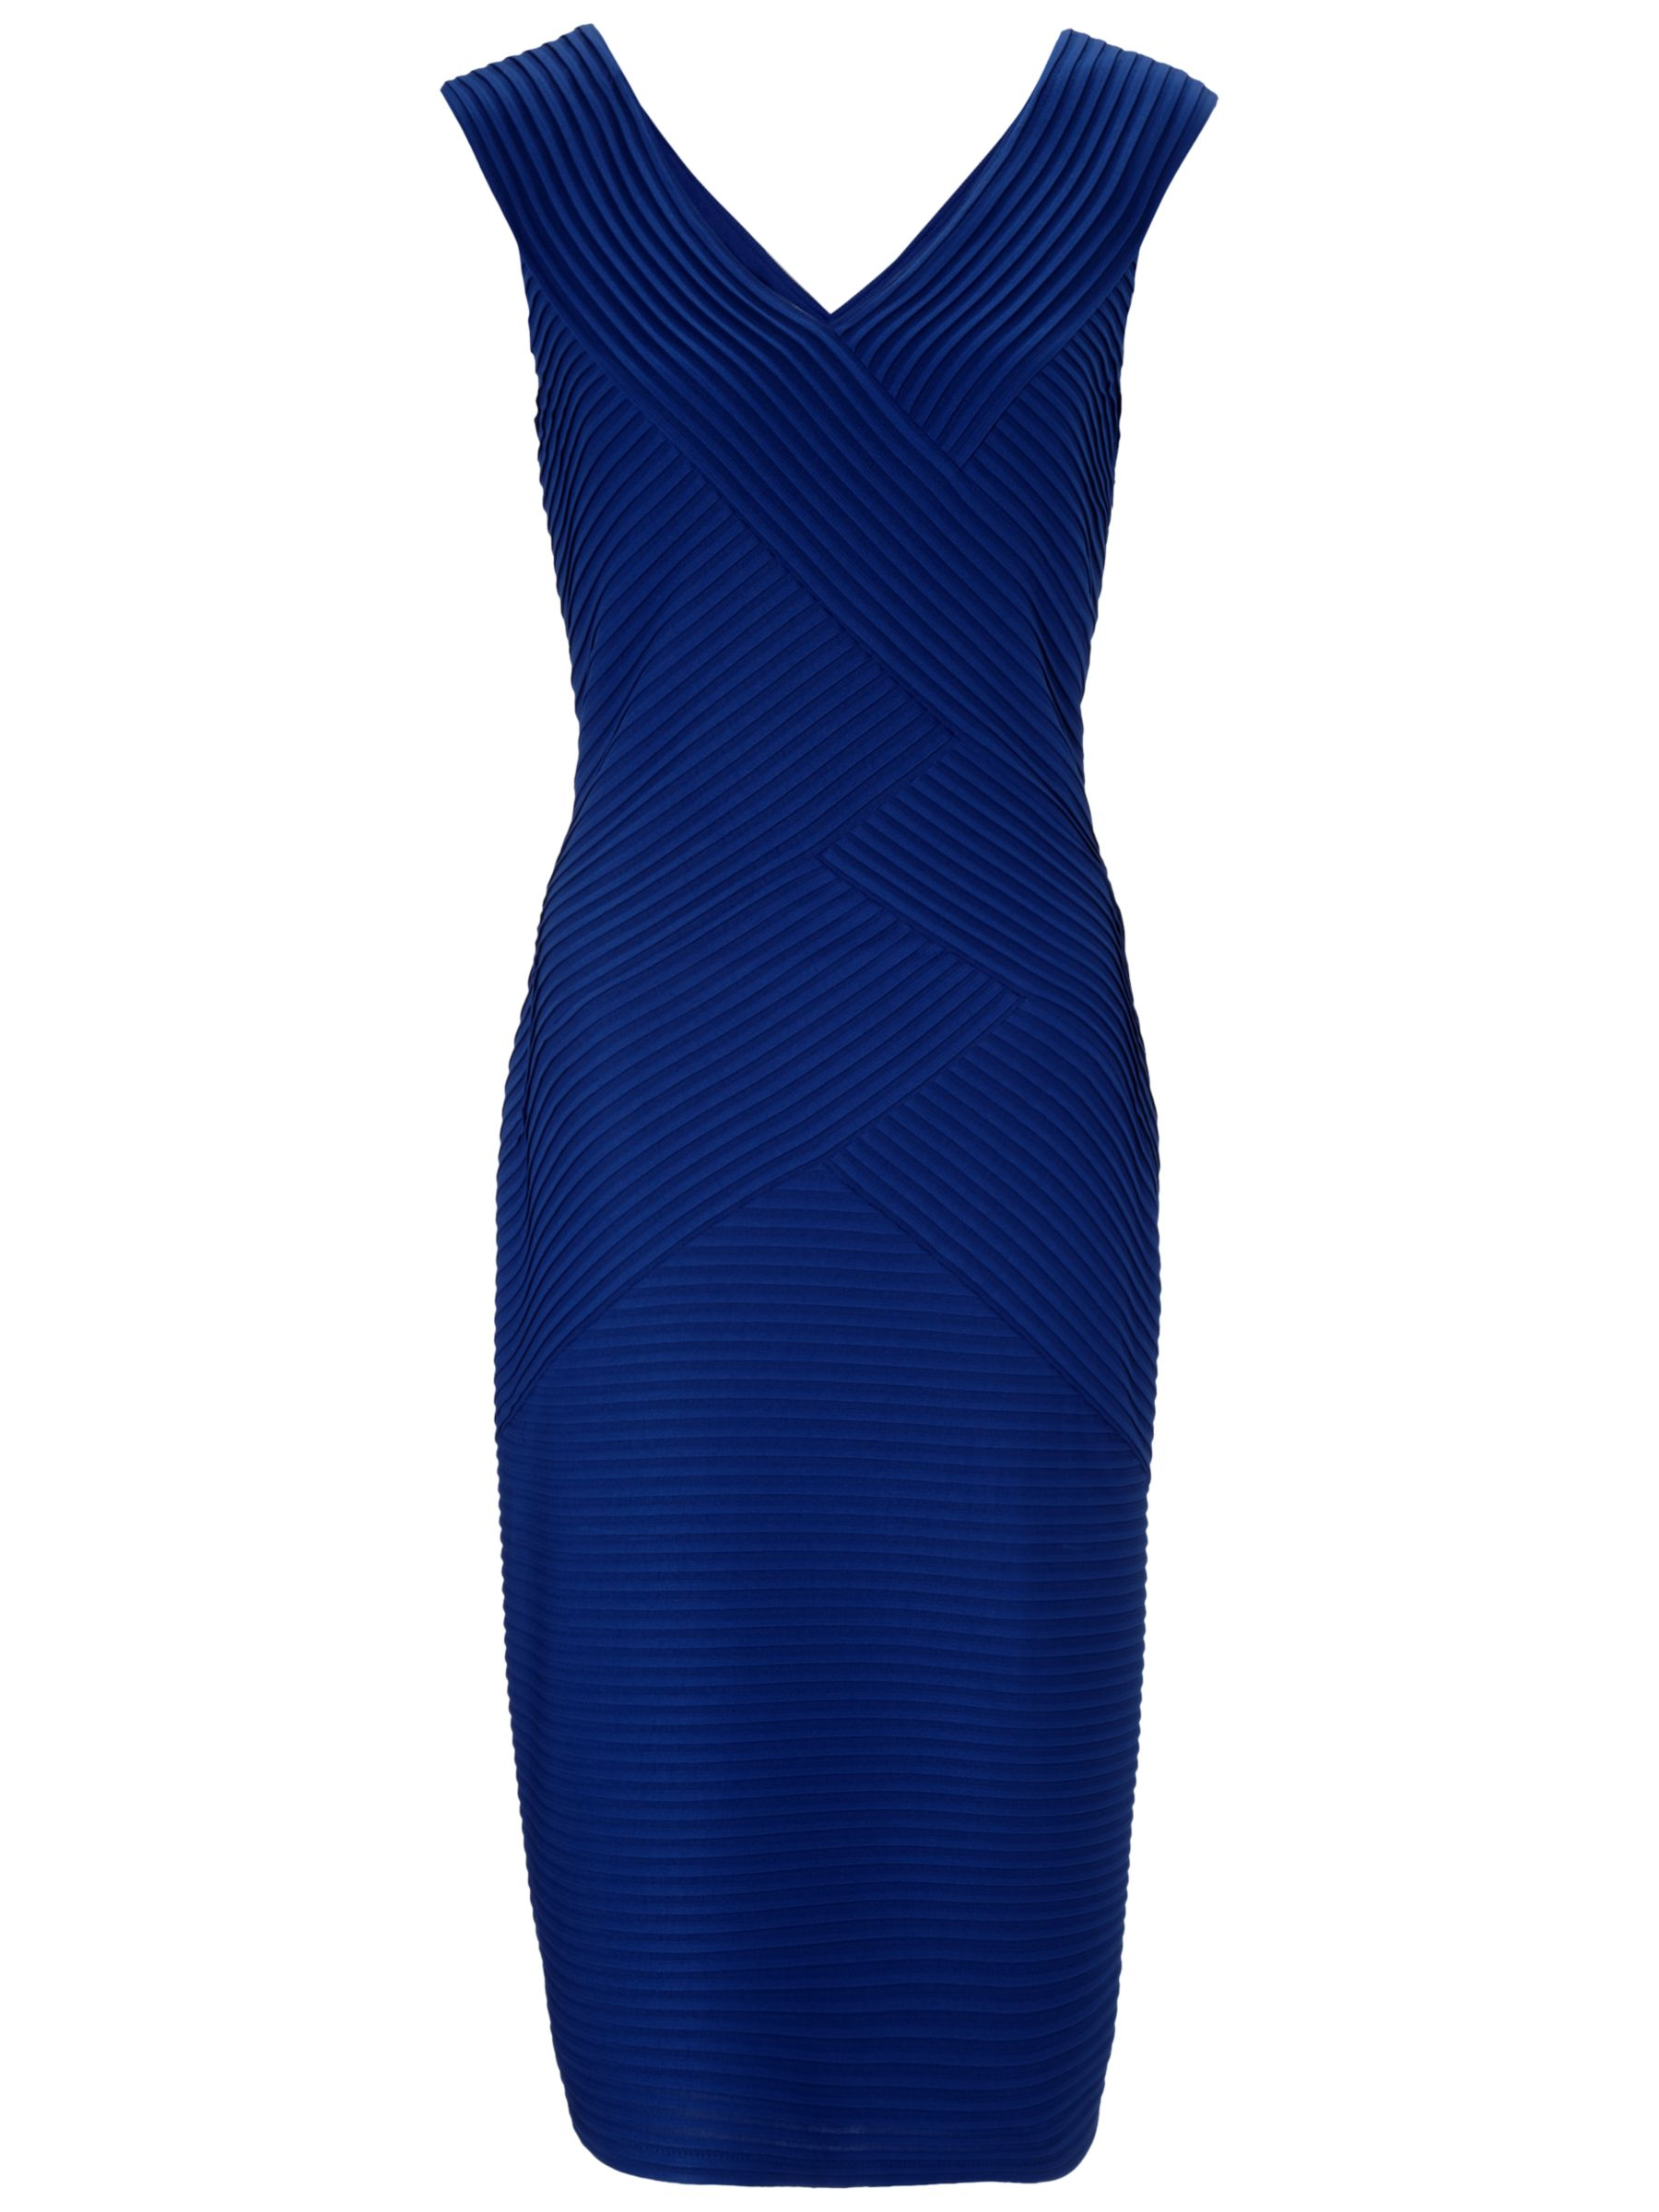 gina bacconi jersey bandage dress autumn blue, gina, bacconi, jersey, bandage, dress, autumn, blue, gina bacconi, 18|16, clearance, womenswear offers, womens dresses offers, women, inactive womenswear, ss14 trends, bold blues, plus size, womens dresses, special offers, 1123248